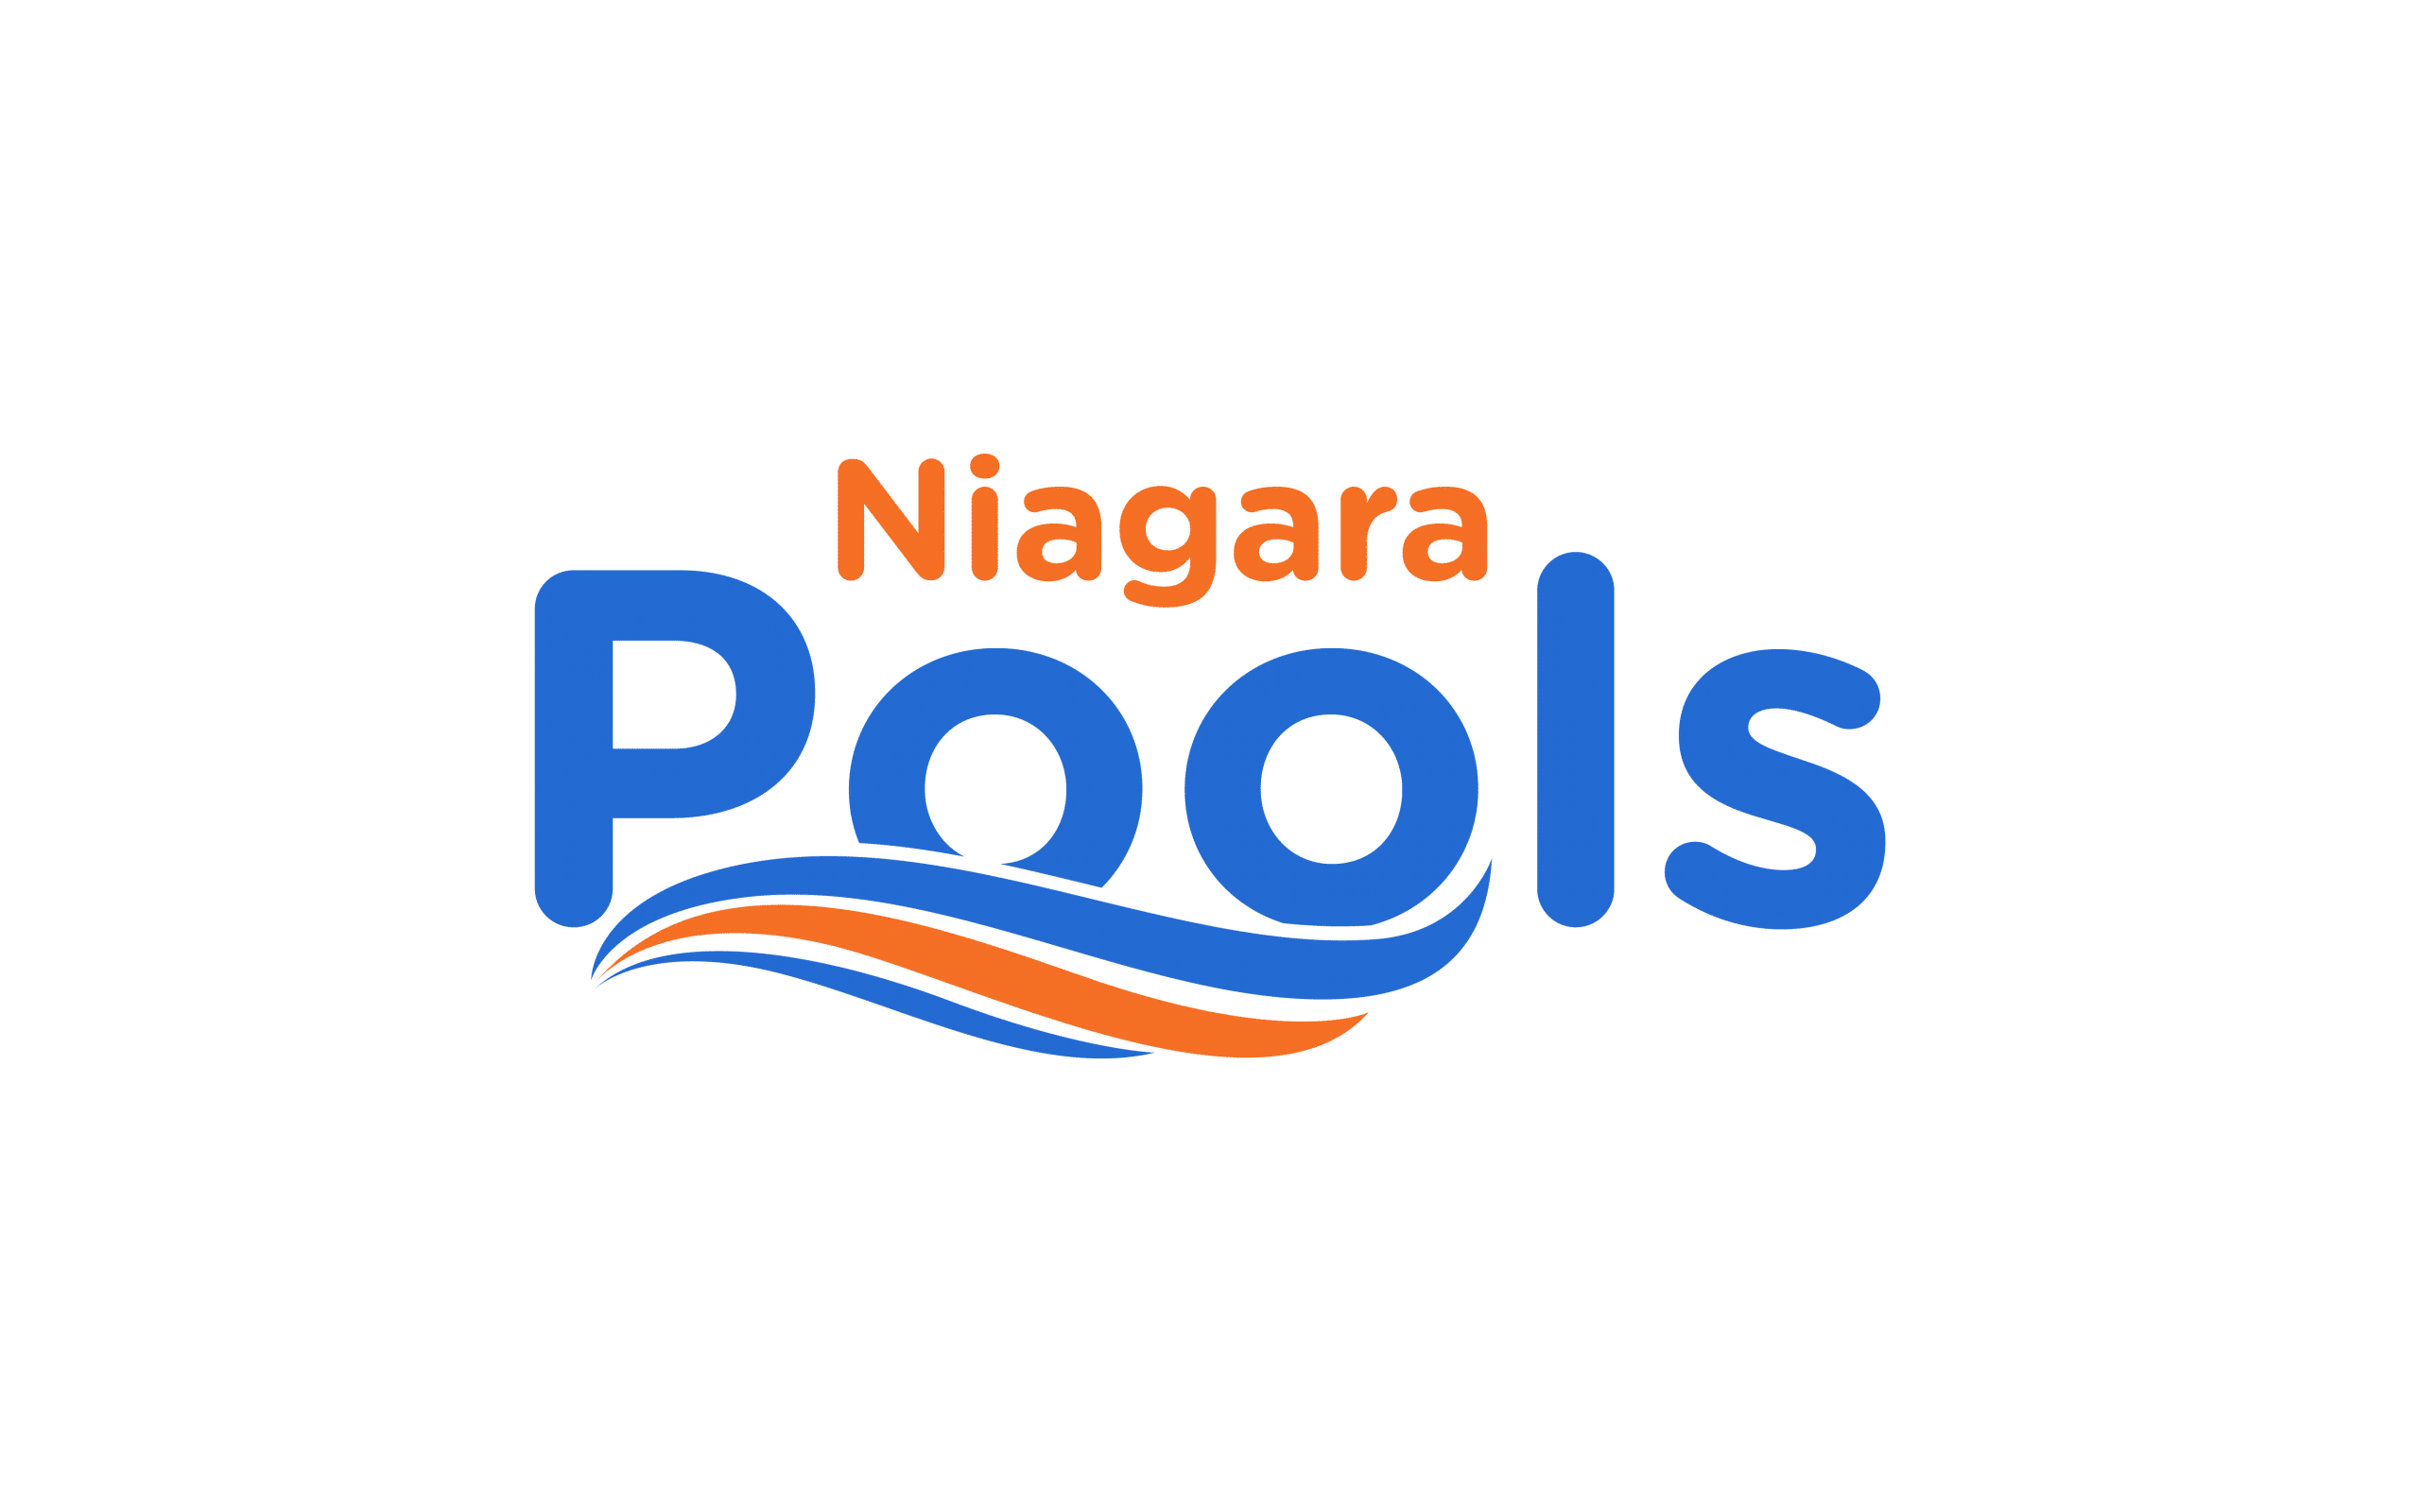 Niagara Pools Inc